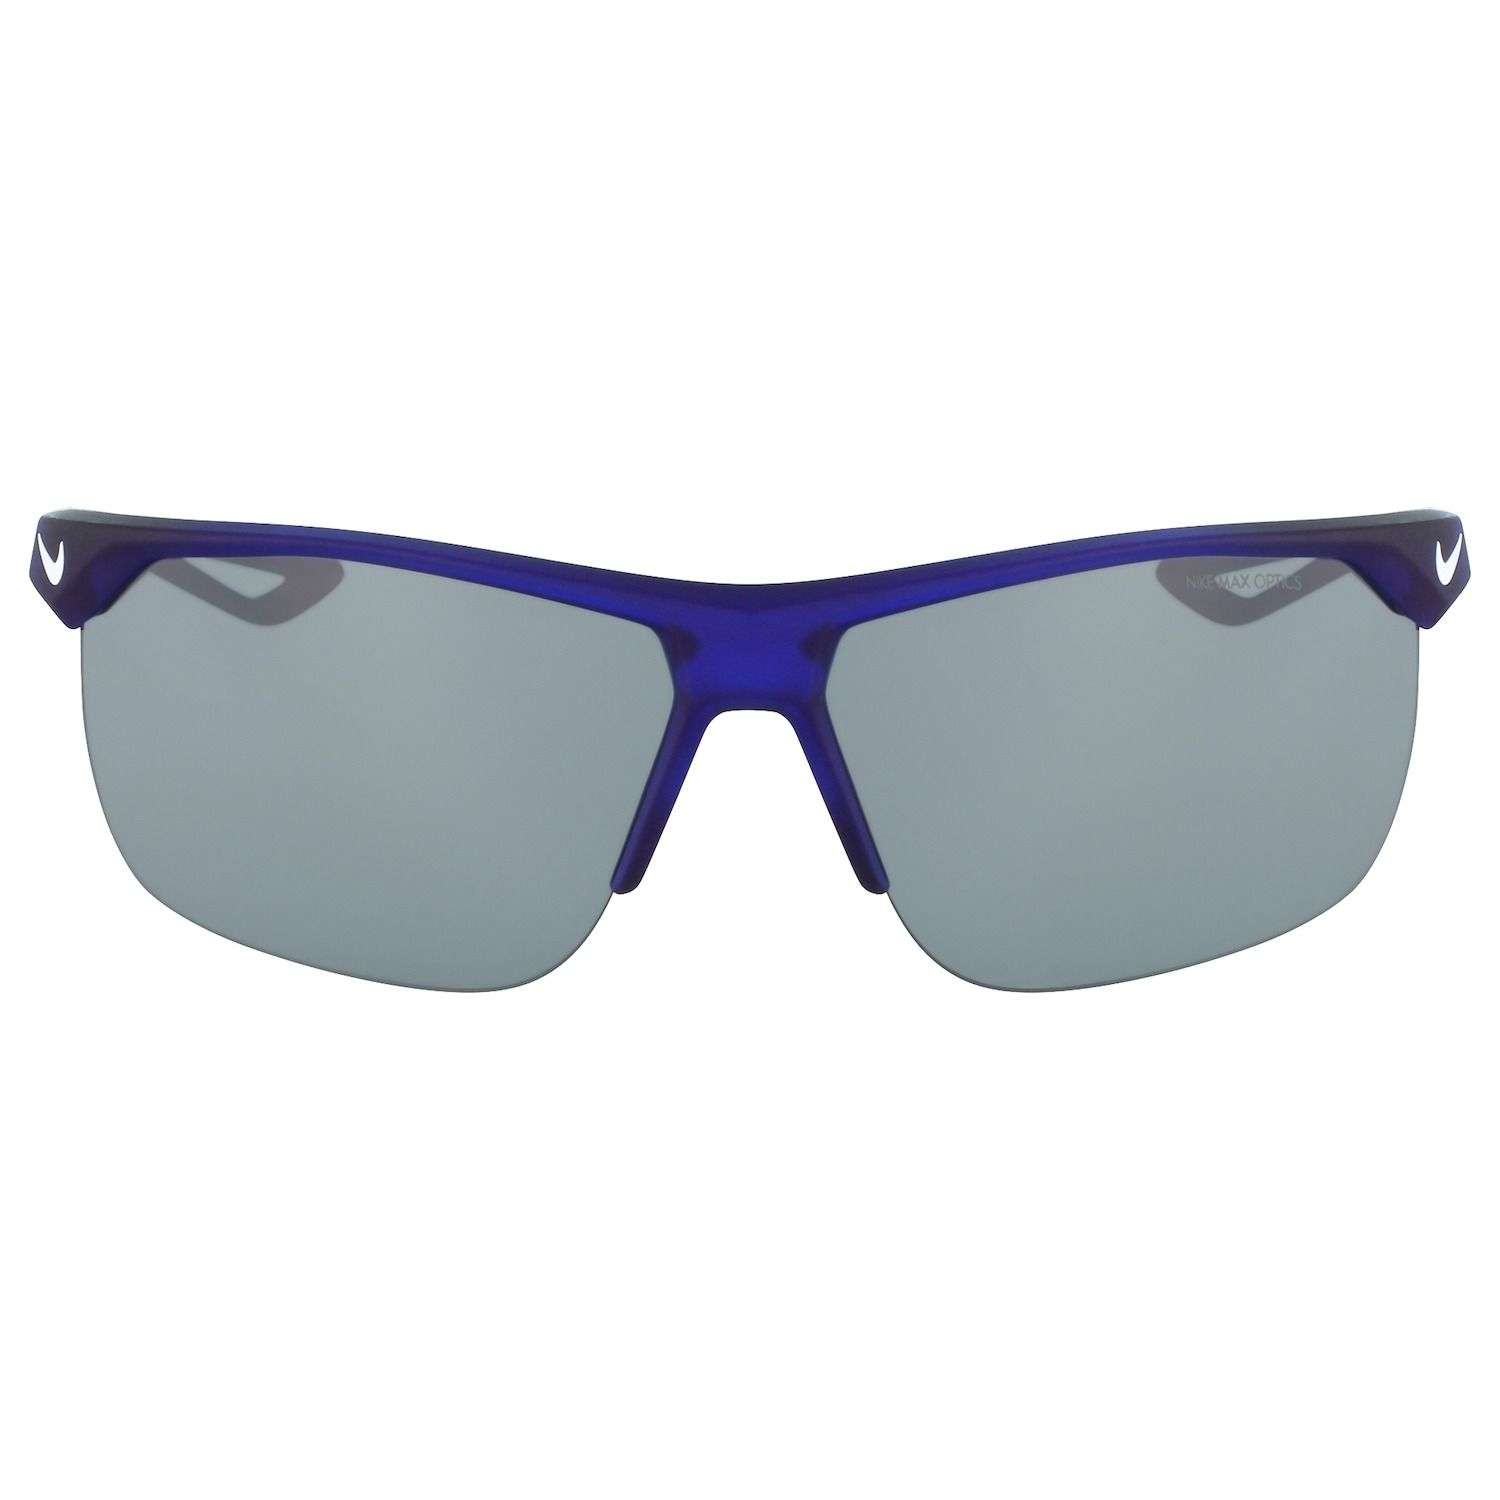 425f019495ec Rimless Sunglasses With C Decor – Southern California Weather Force